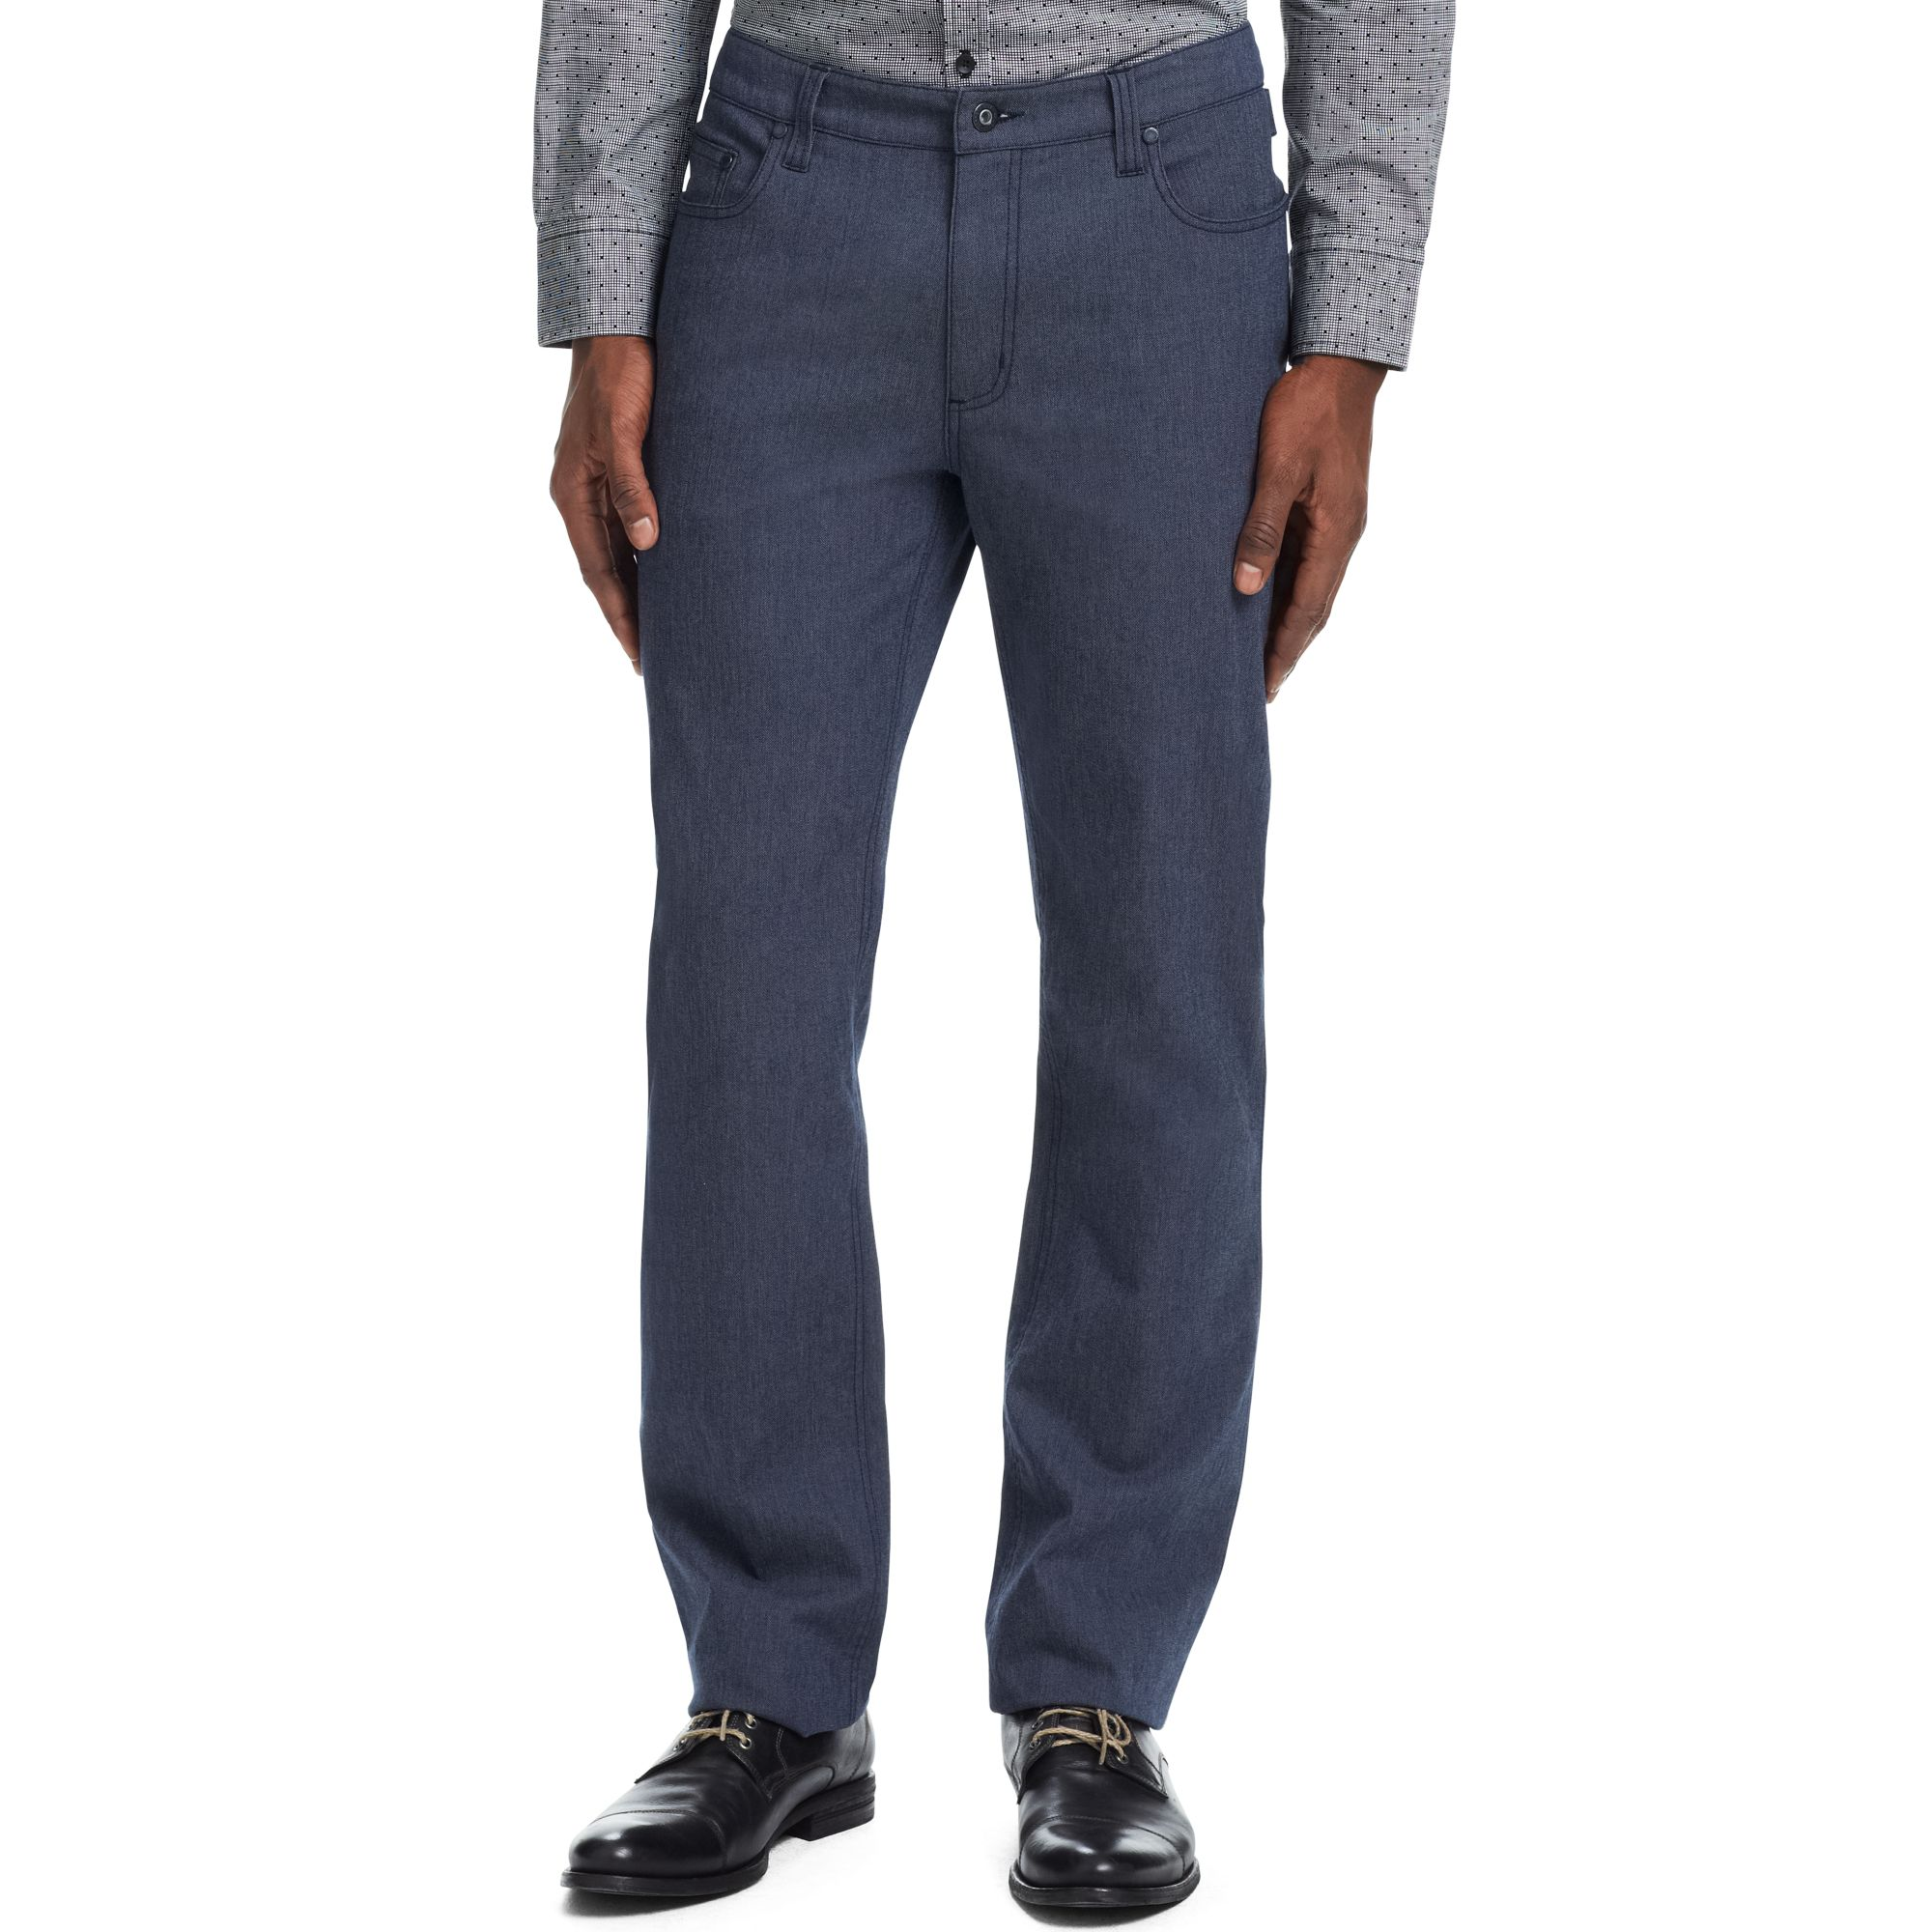 Kenneth Cole Reaction 5 Pocket Pants In Blue For Men Lyst